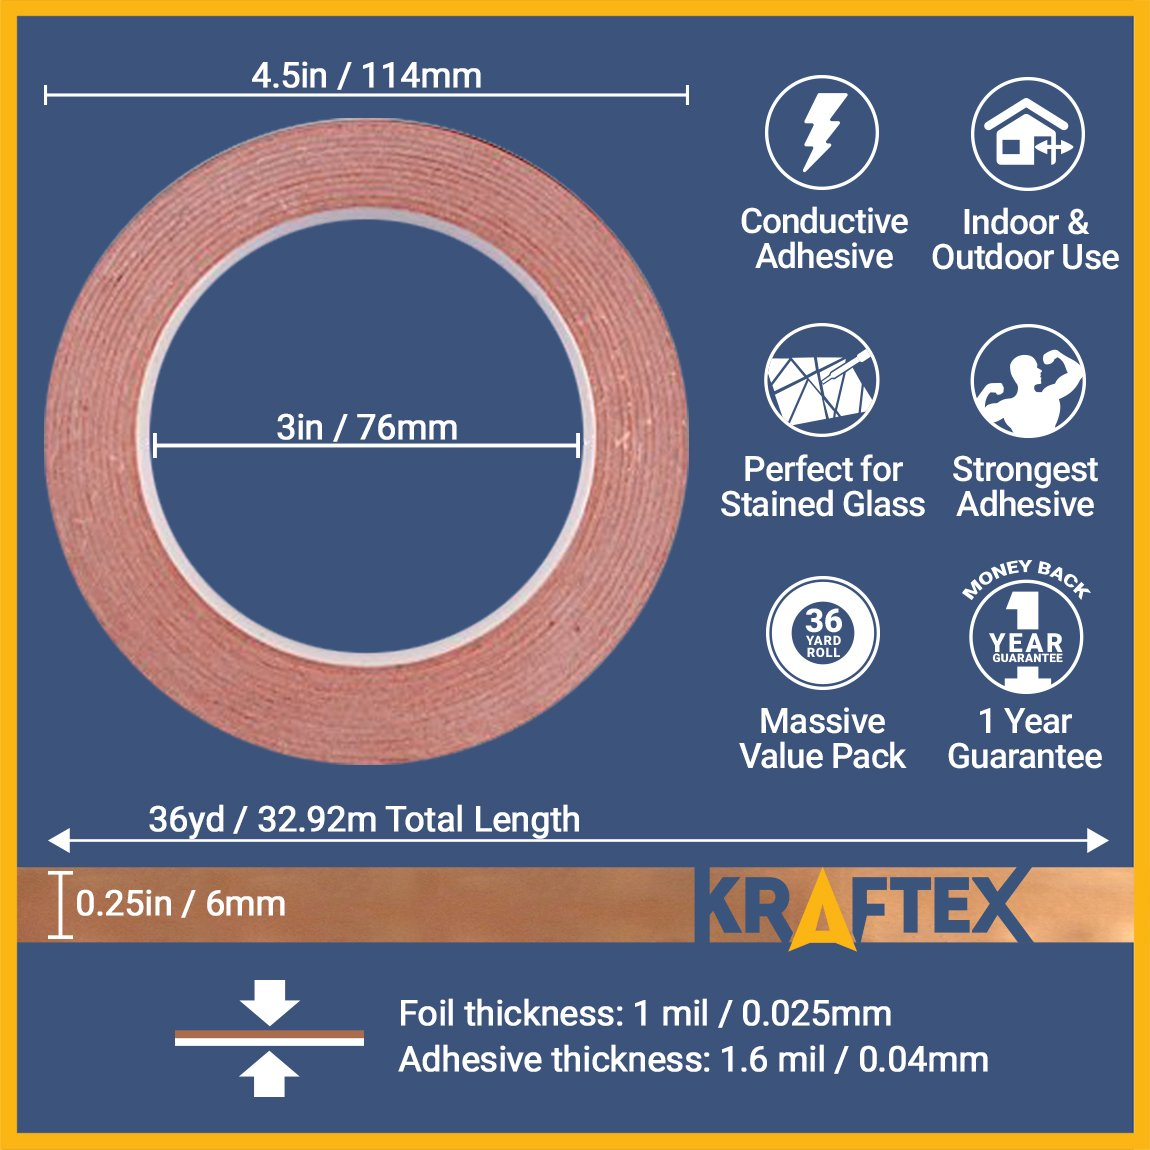 Copper Foil Tape [2 HUGE ROLLS] (1/4inch X 36yd each) 72 Yard Pack with Conductive Adhesive - Stained Glass, Soldering, Electrical Repair, Grounding, EMI Shielding - Extra Value Pack- Thicker Foil Kraftex 4336904790